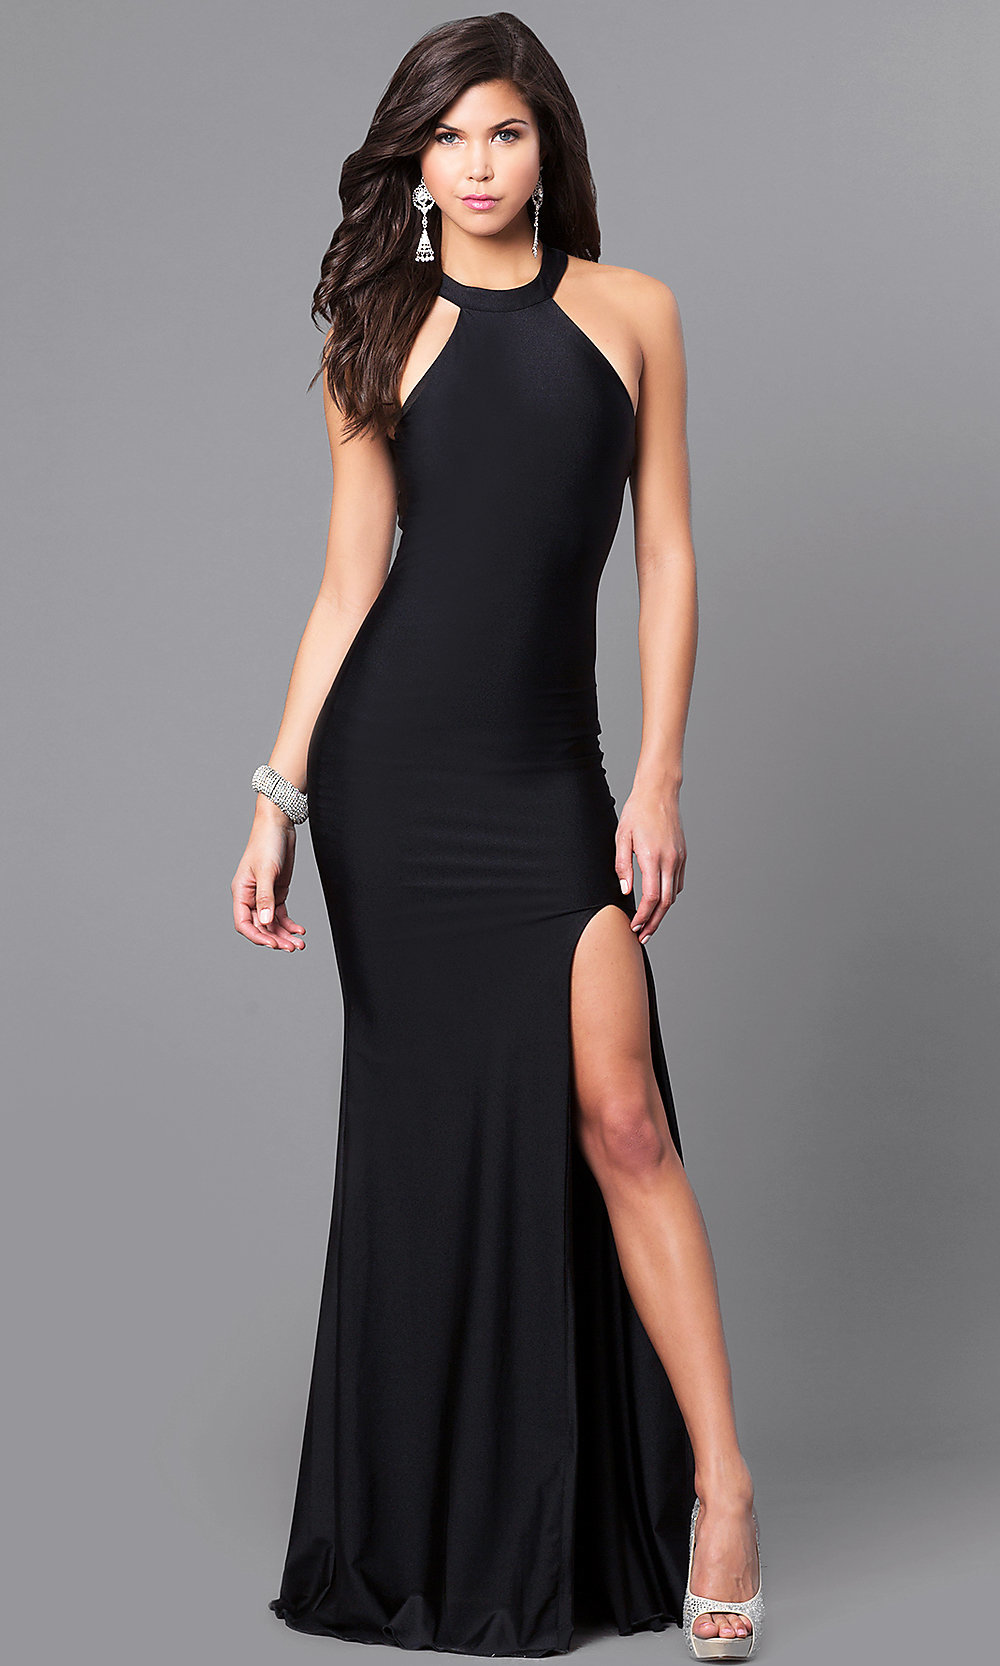 High Neck Prom Dress With Cut Out Back